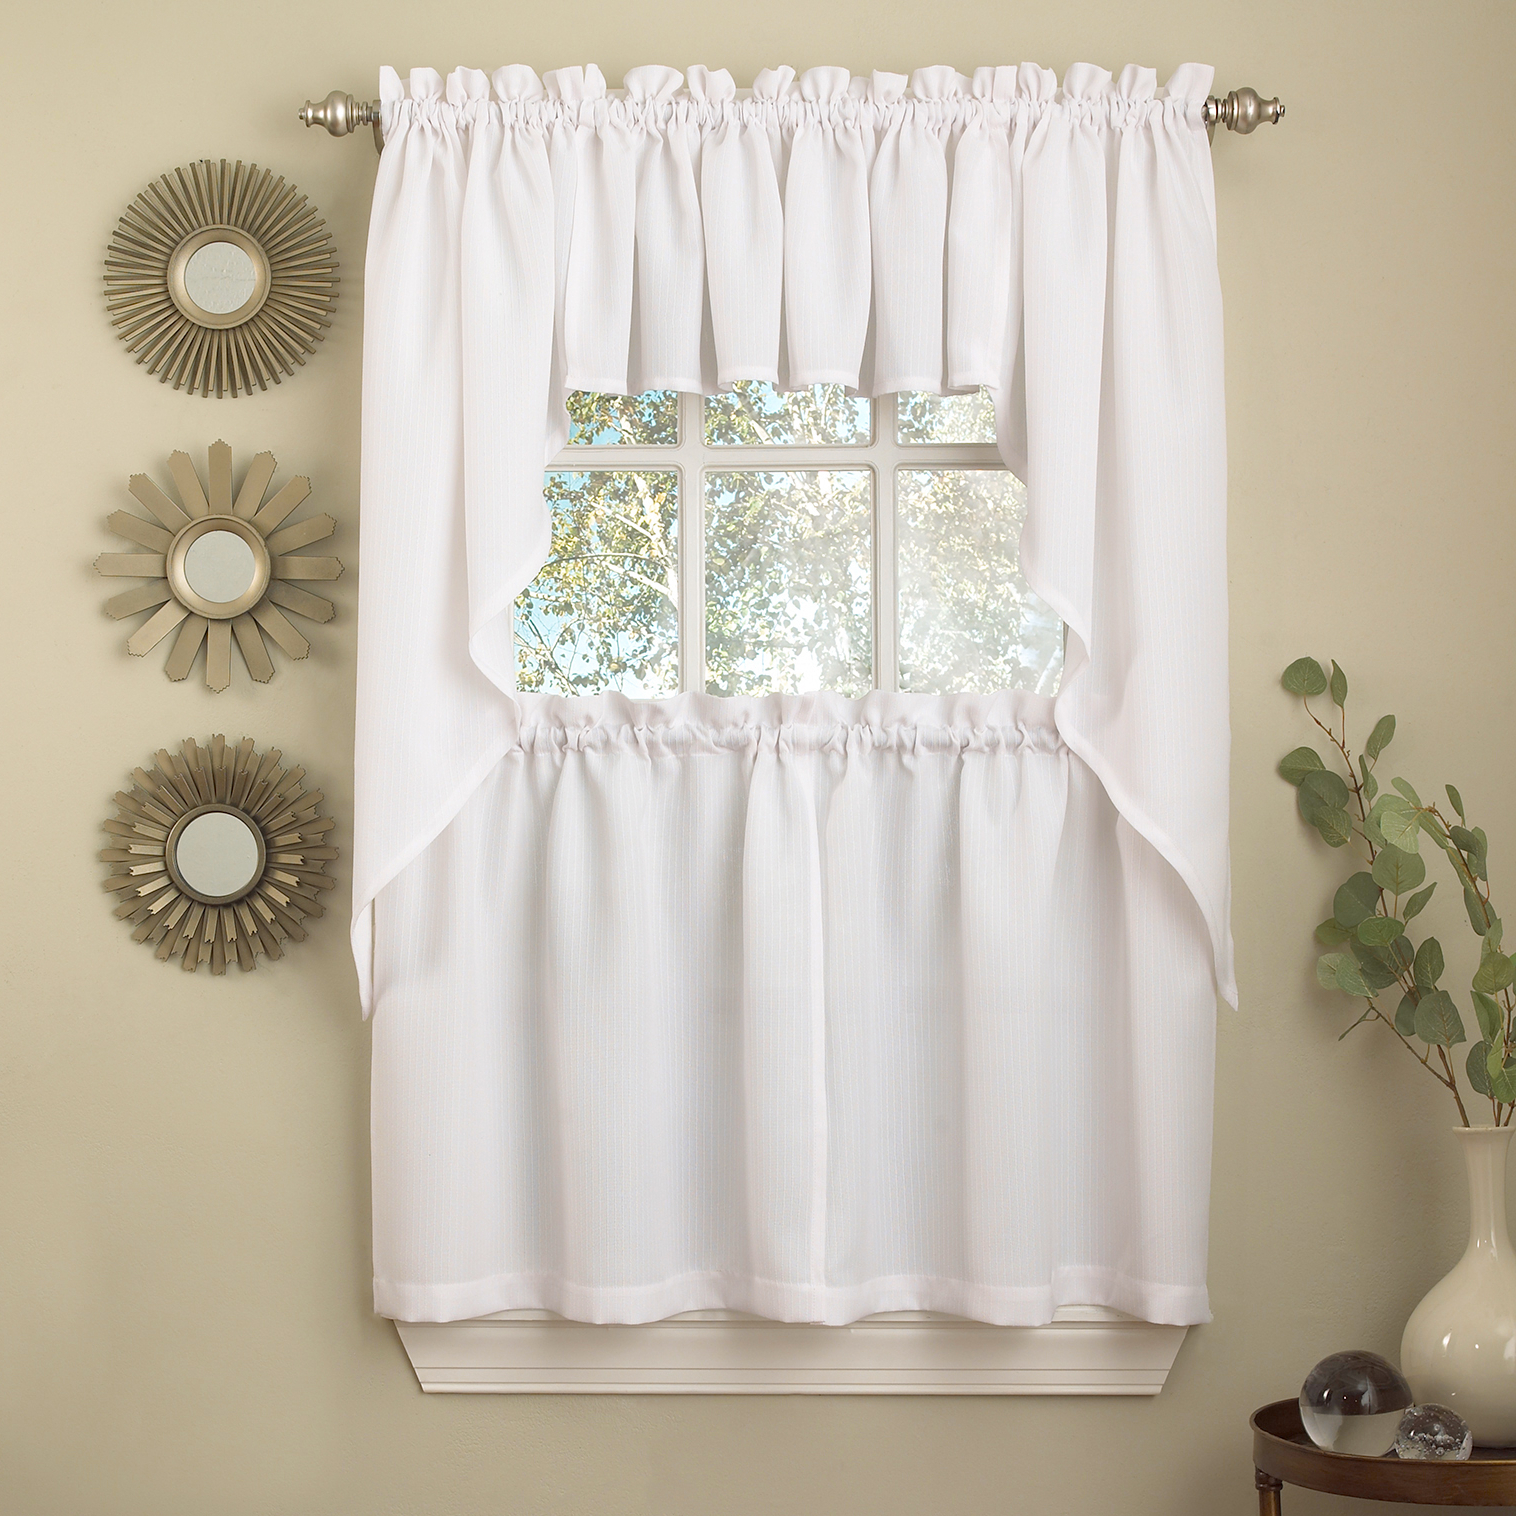 Details About White Solid Opaque Ribcord Kitchen Curtains – Choice Of Tiers Valance Or Swag Throughout Preferred Semi Sheer Rod Pocket Kitchen Curtain Valance And Tiers Sets (View 11 of 20)